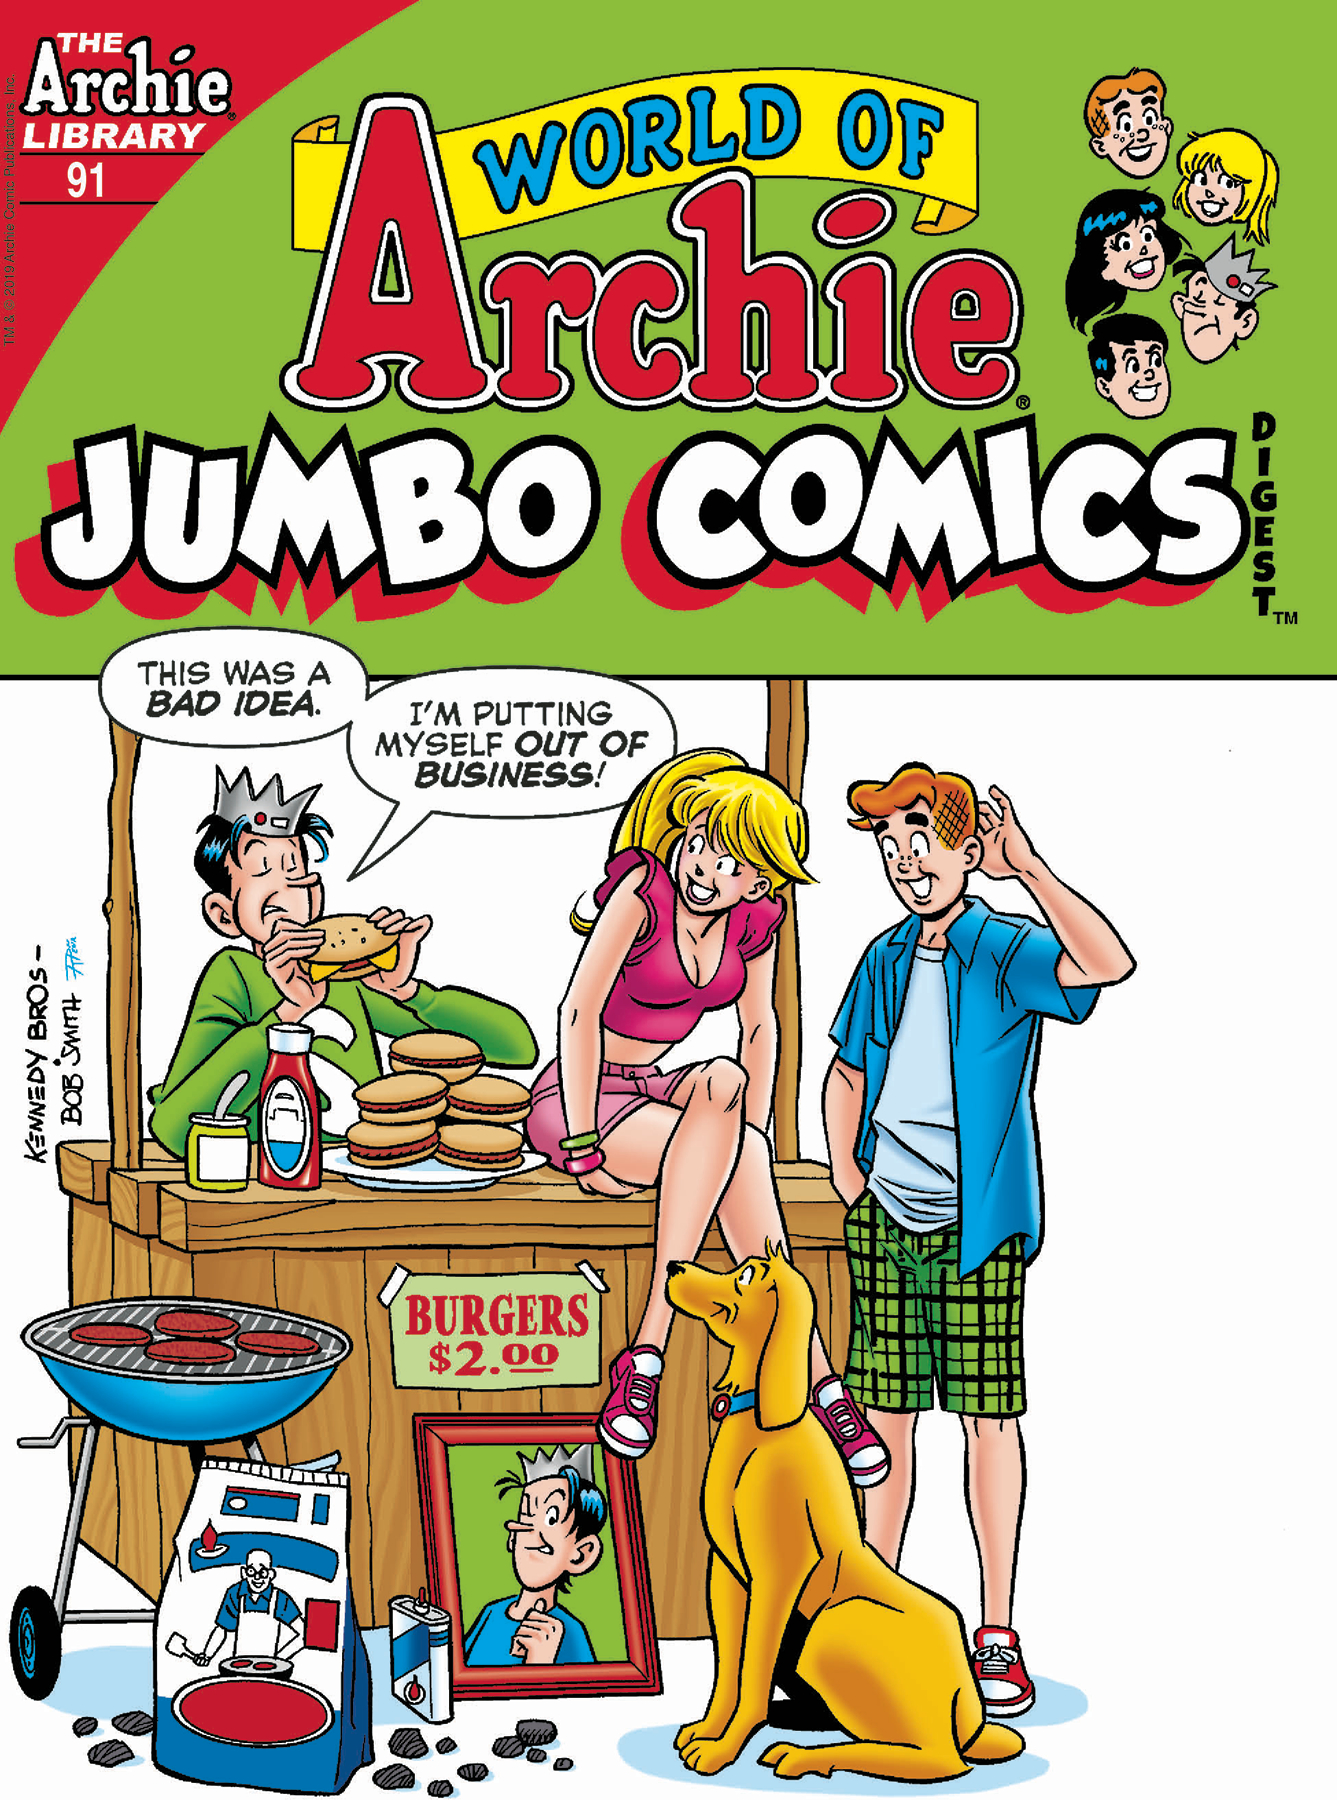 WORLD OF ARCHIE JUMBO COMICS DIGEST #91